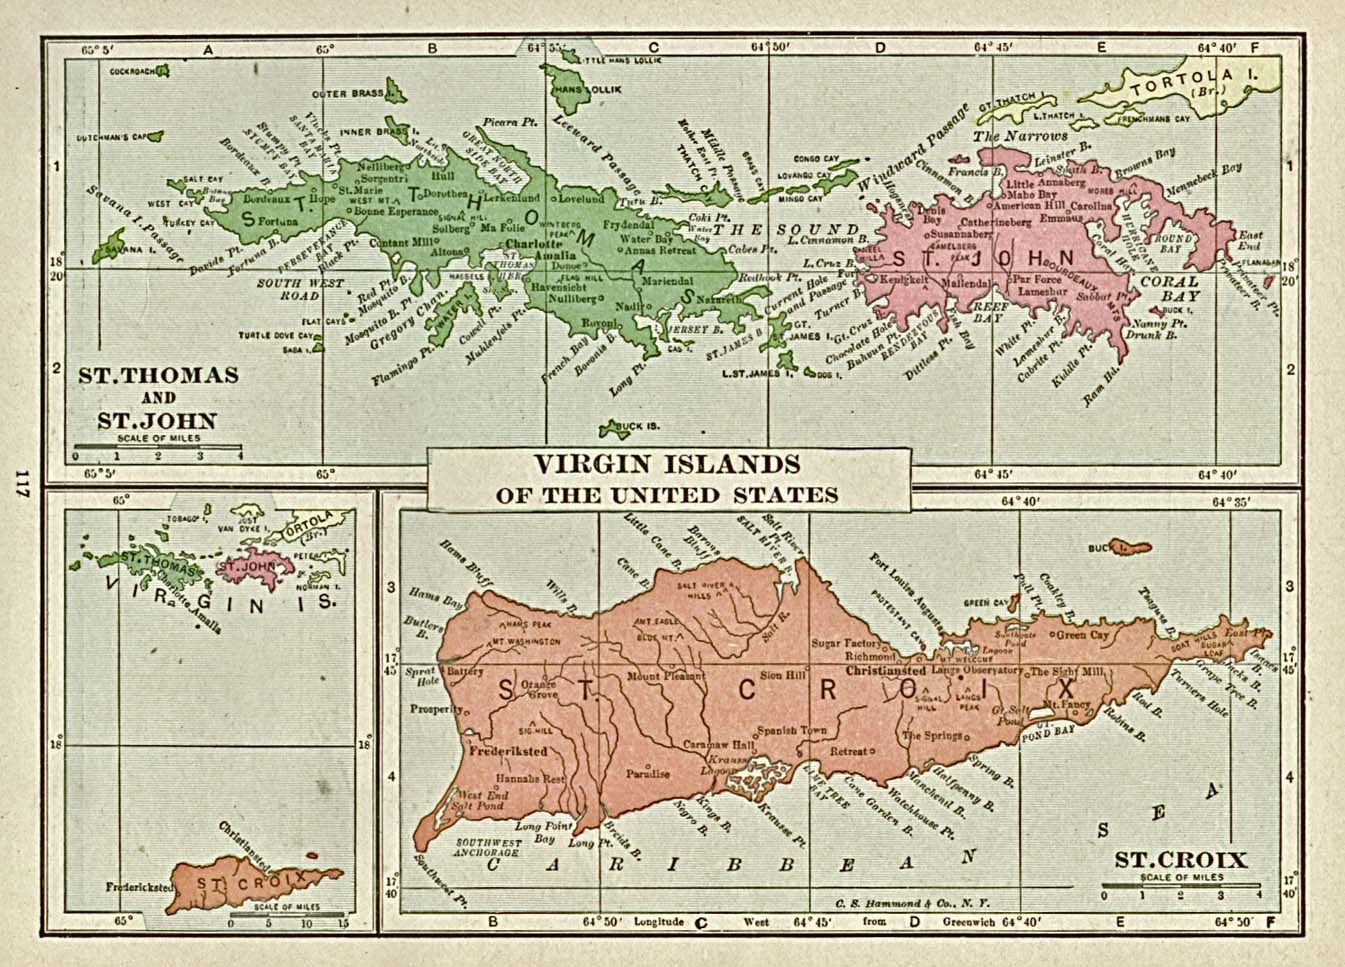 Welcome Transfer Day A Centennial of the Virgin Islands of the